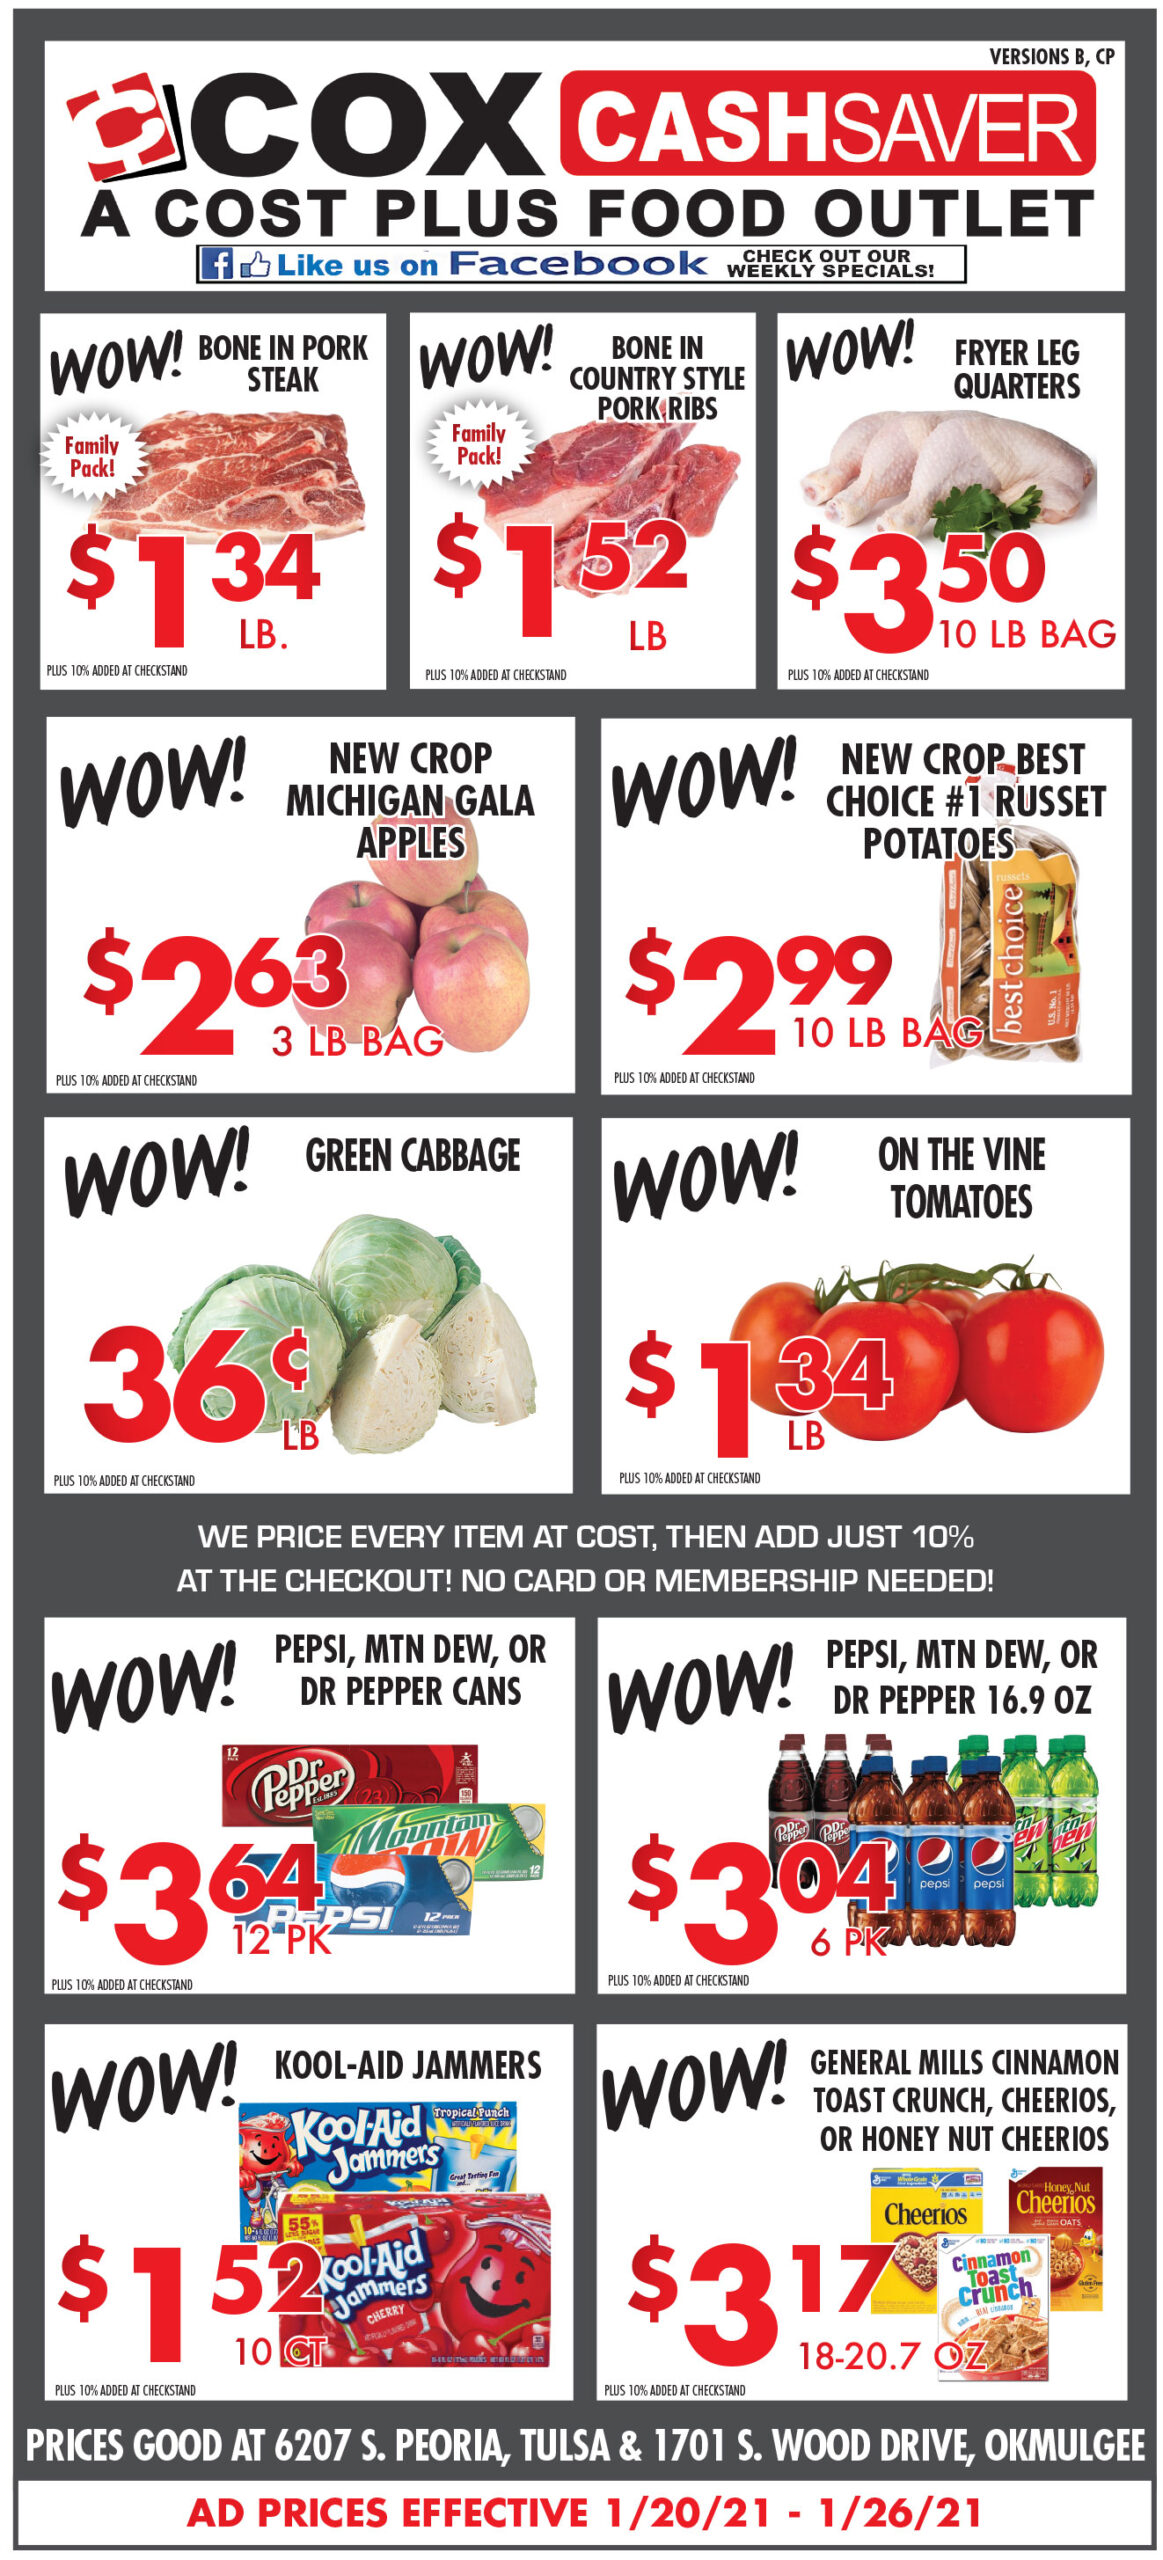 Cox Cash Saver specials for week of 1-20-21